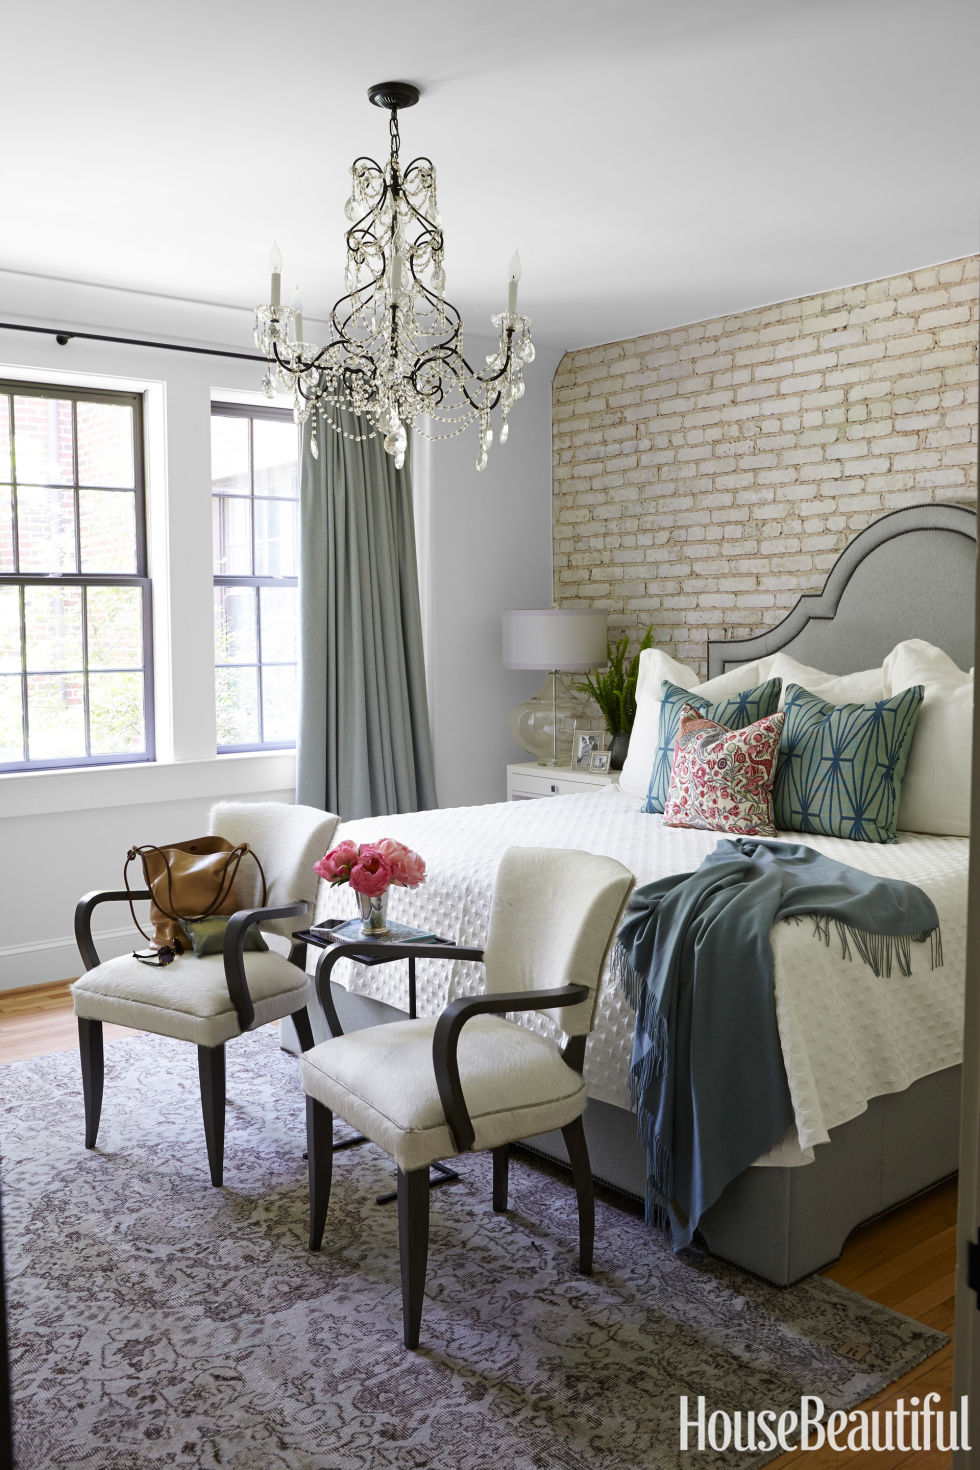 Room Design Ideas For Bedrooms fixer upper yours mine ours and a home on the river 175 Stylish Bedroom Decorating Ideas Design Pictures Of Beautiful Modern Bedrooms